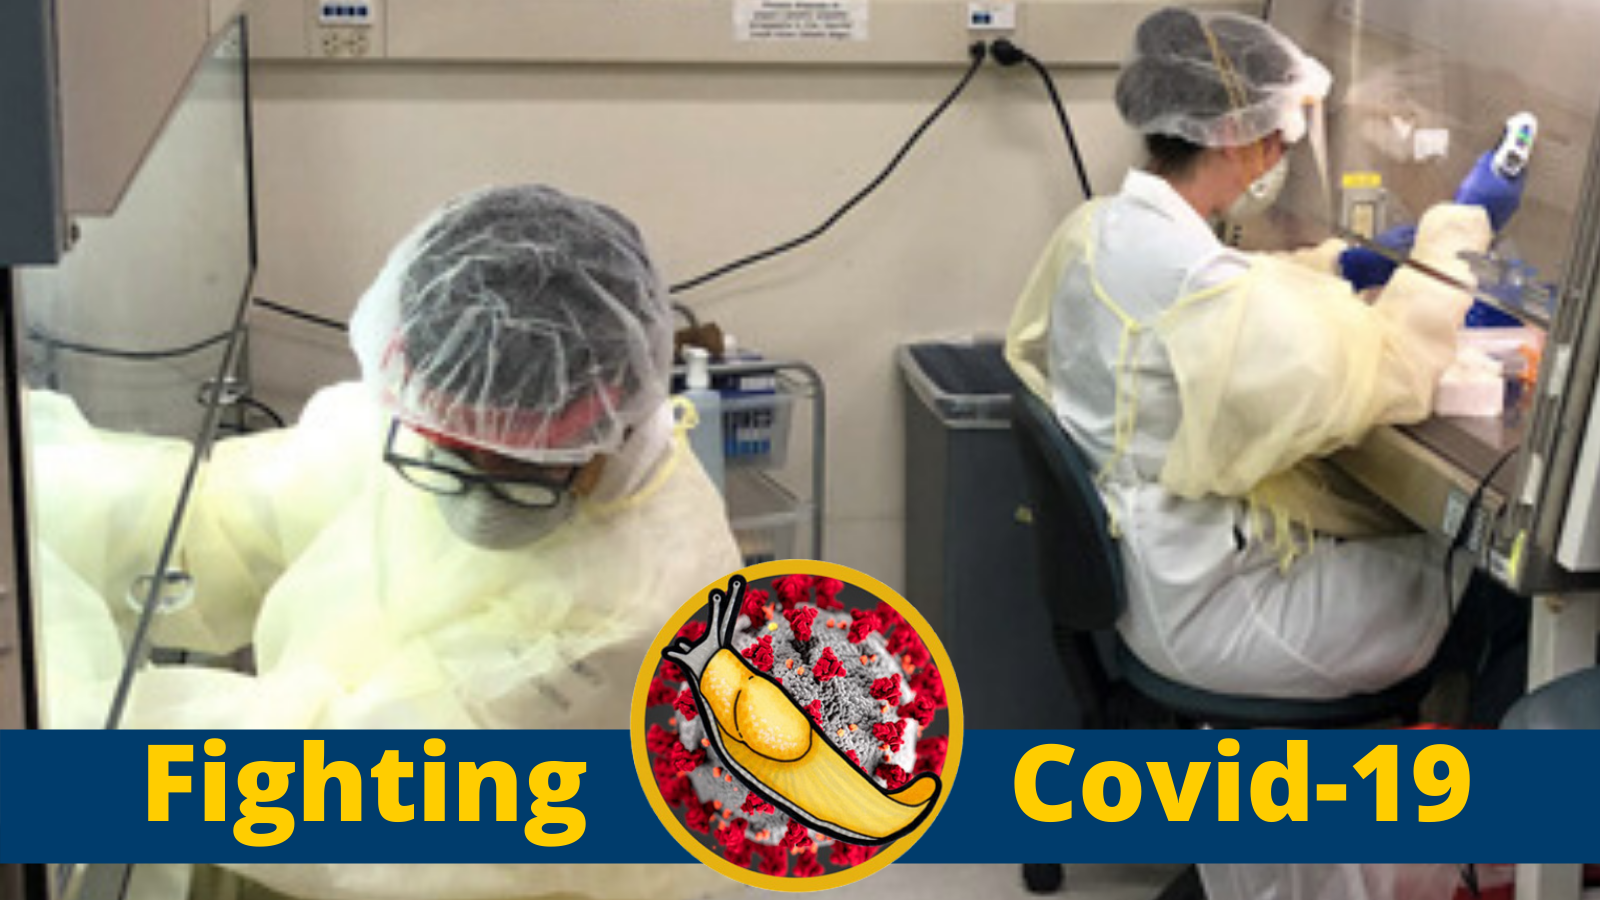 Two researchers in a lab at UCSC are working on developing testing for COVID-19